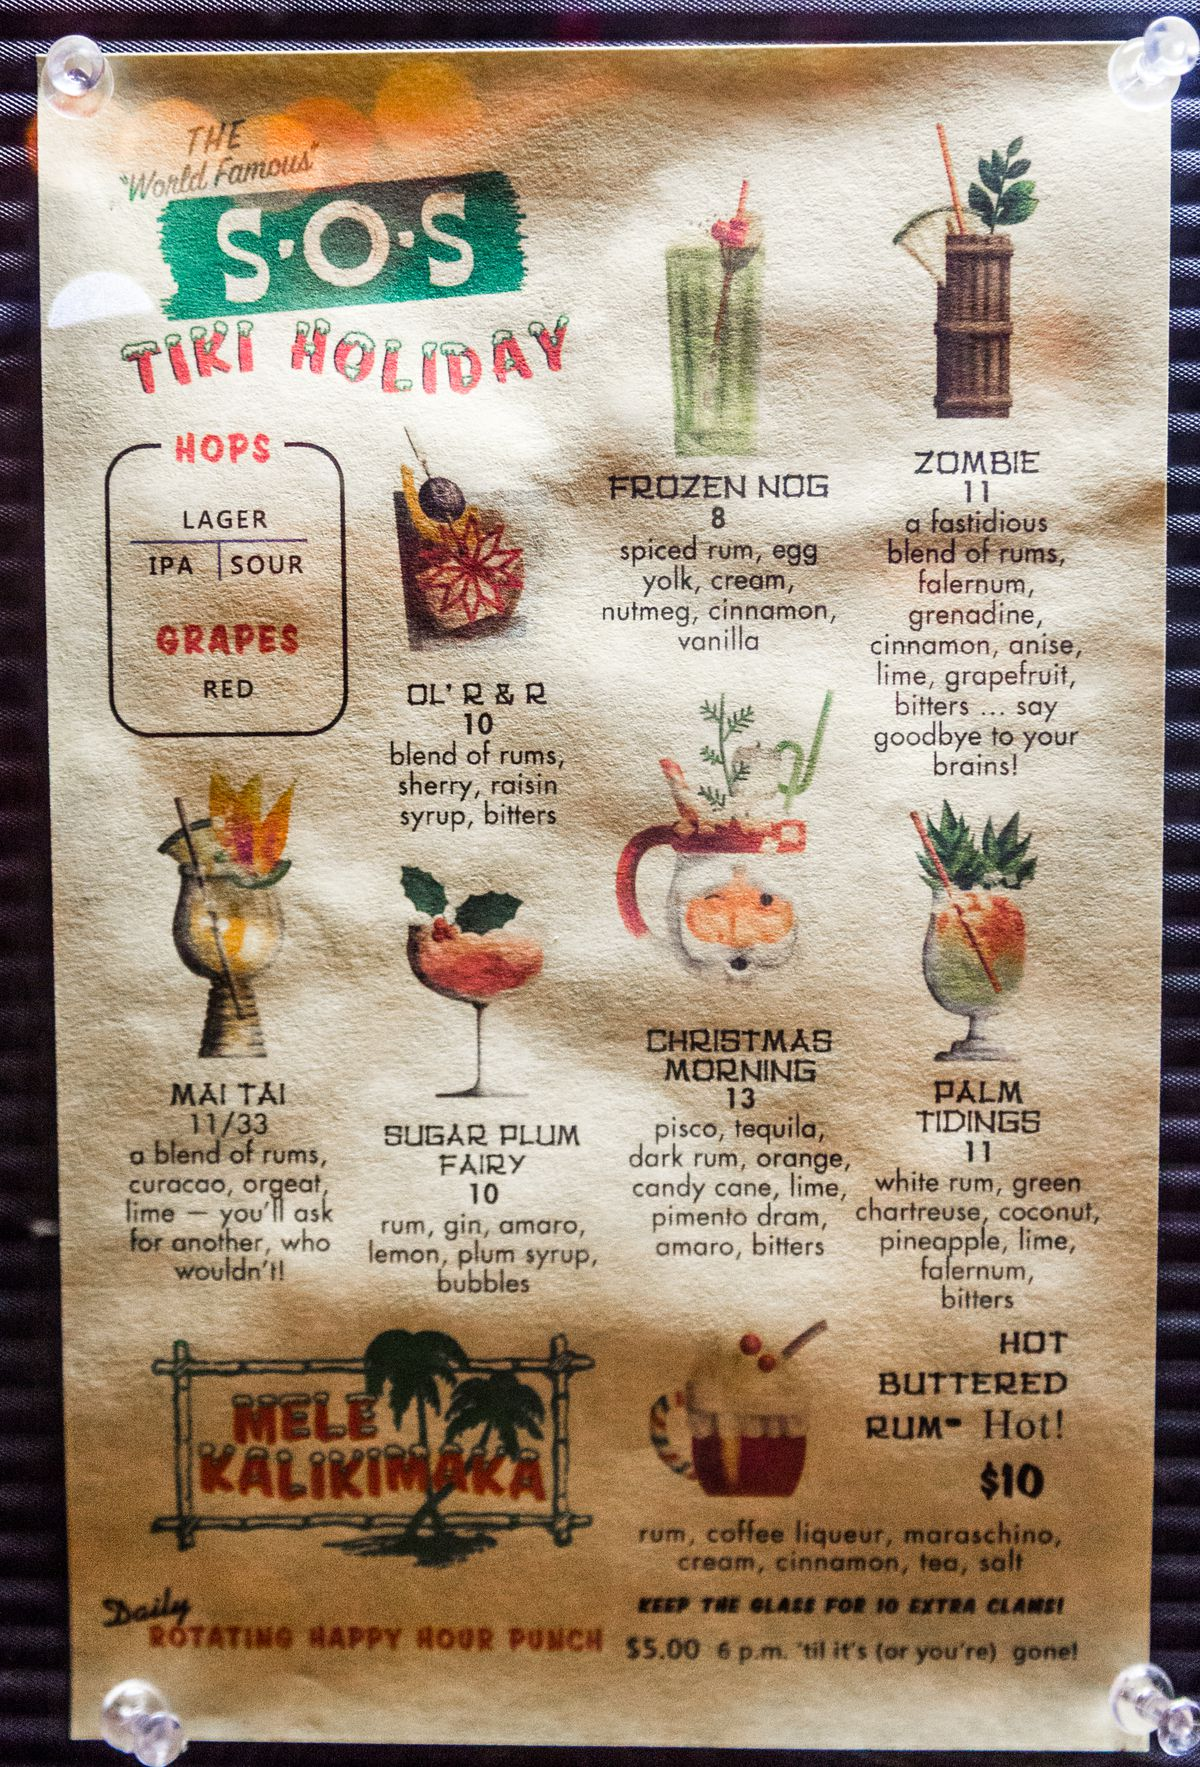 The Holiday Pop Up Bar At Sos Tiki Bar Returns To Decatur On